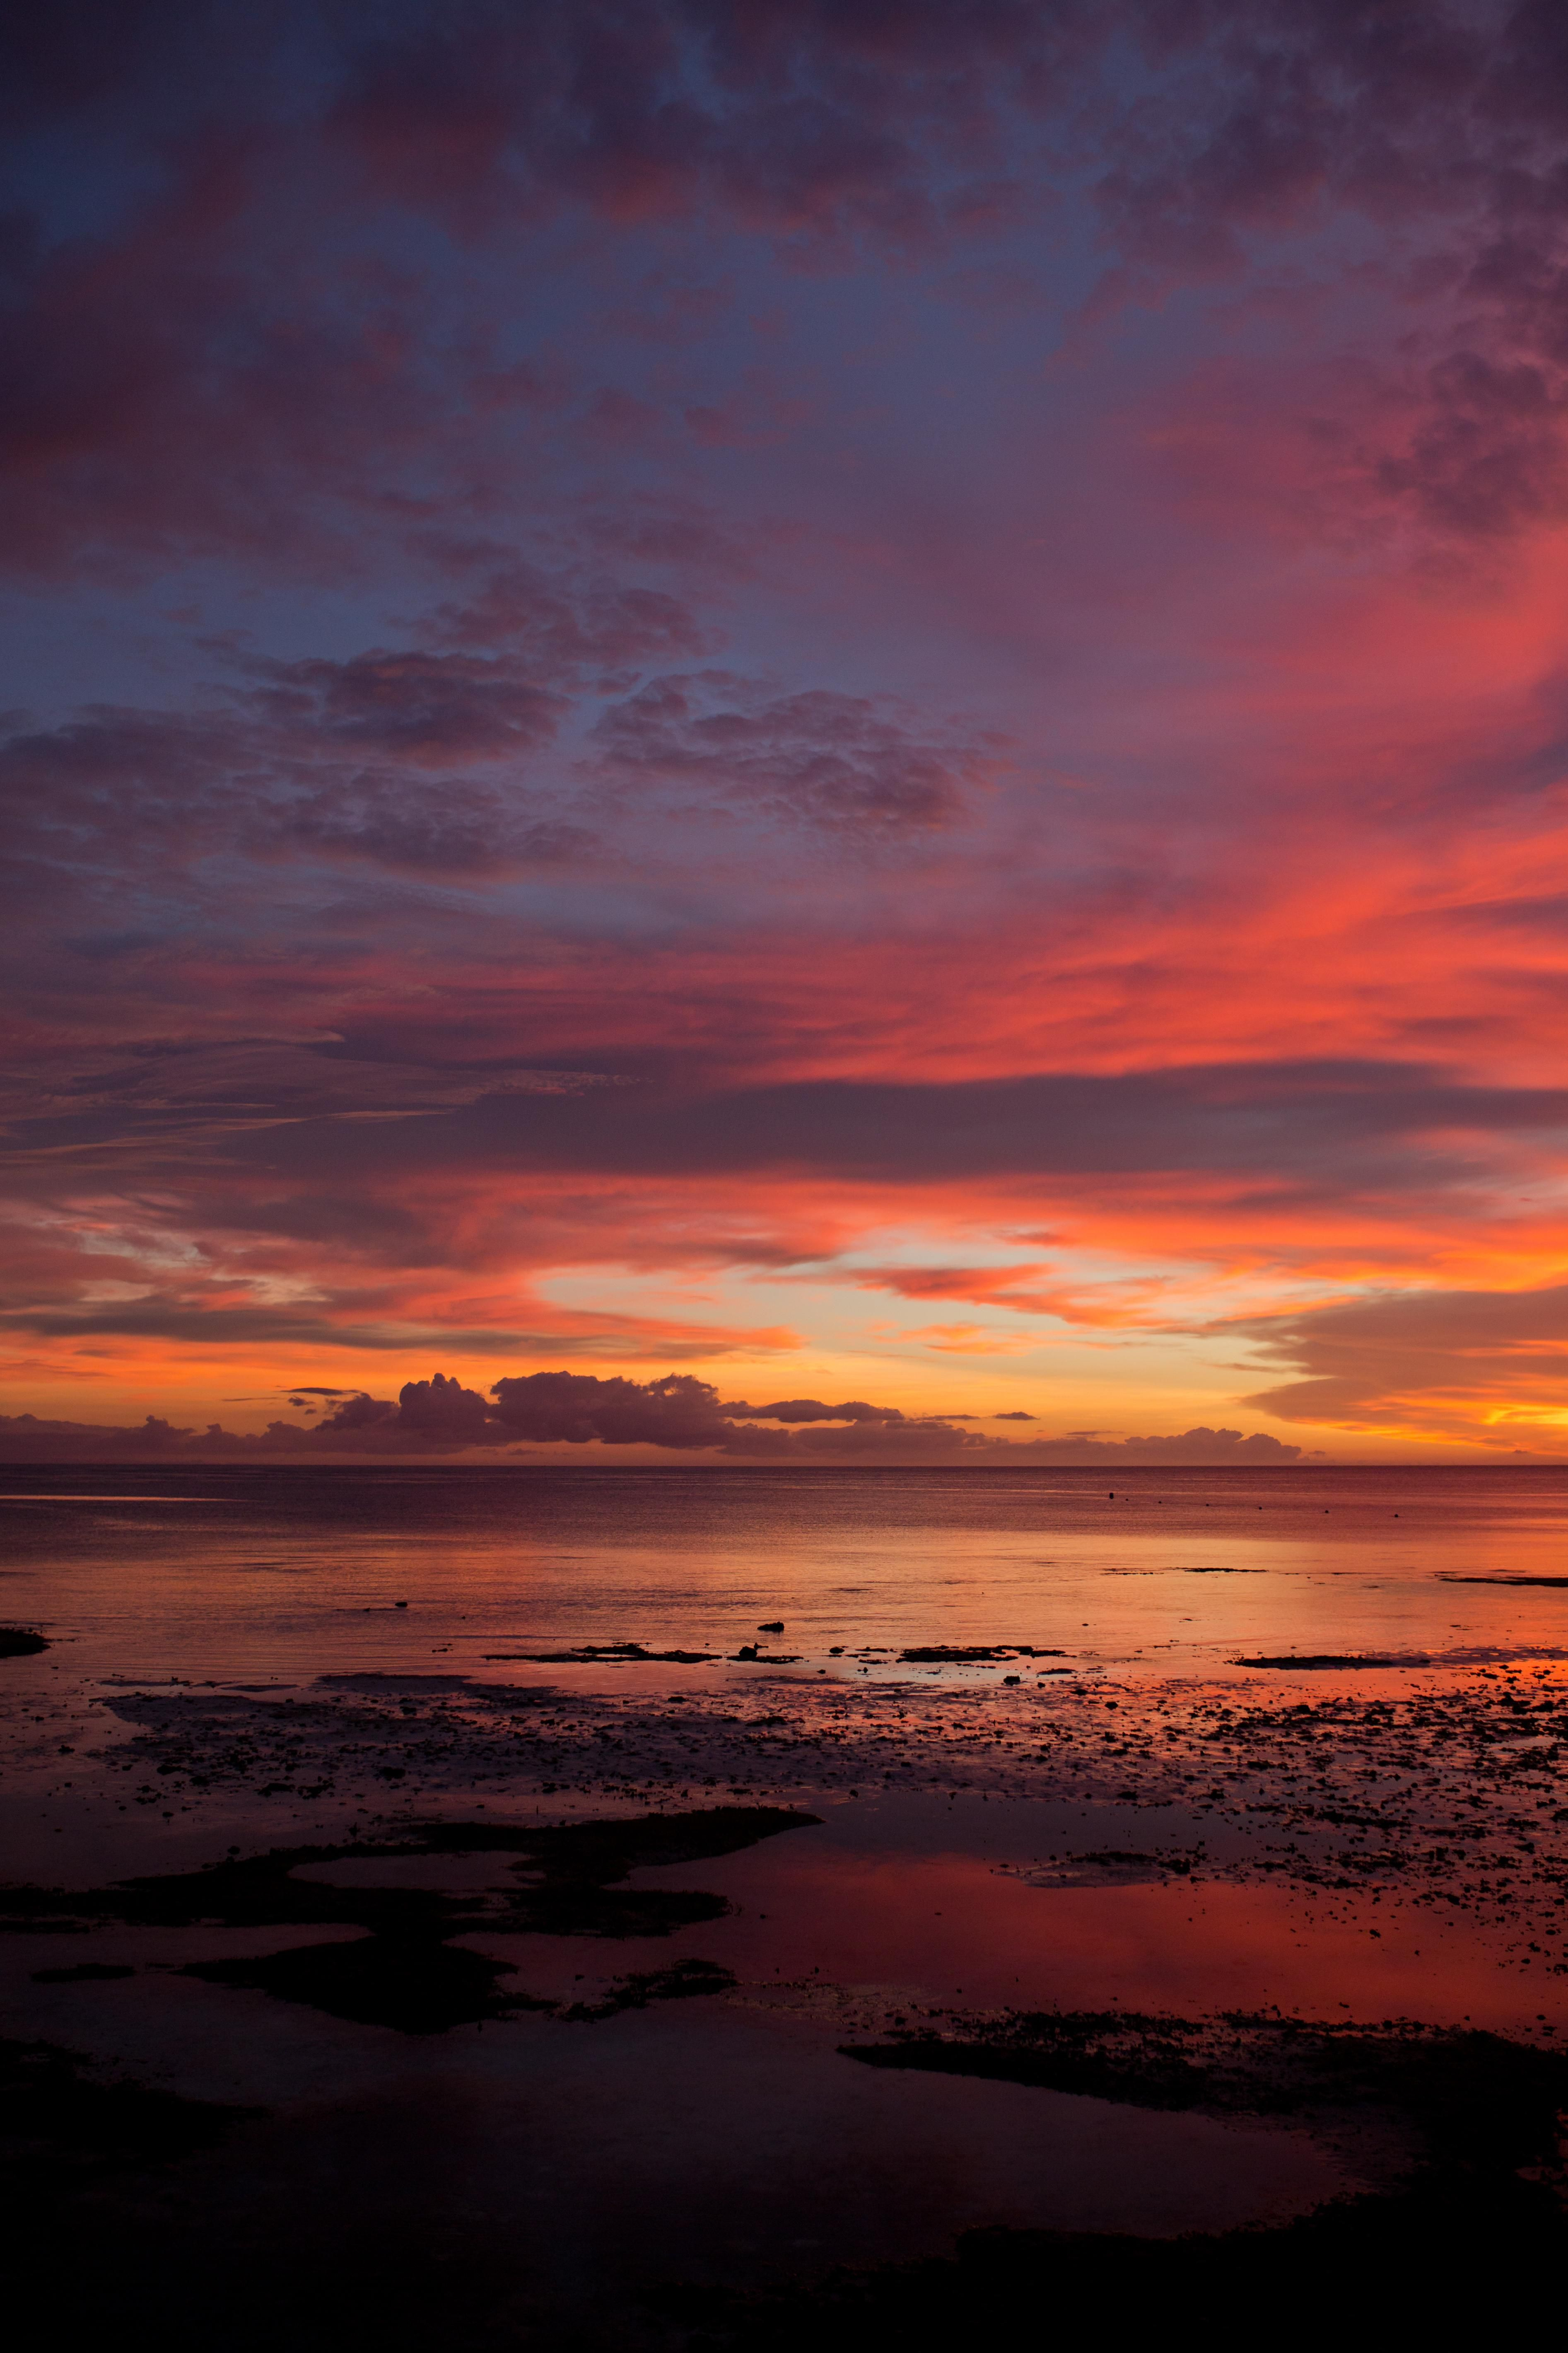 The Best Sunset I Ve Seen In The Philippines Beautifulnature Naturep In 2020 Beautiful Scenery Photography Landscape Photography Beach Sunset Landscape Photography